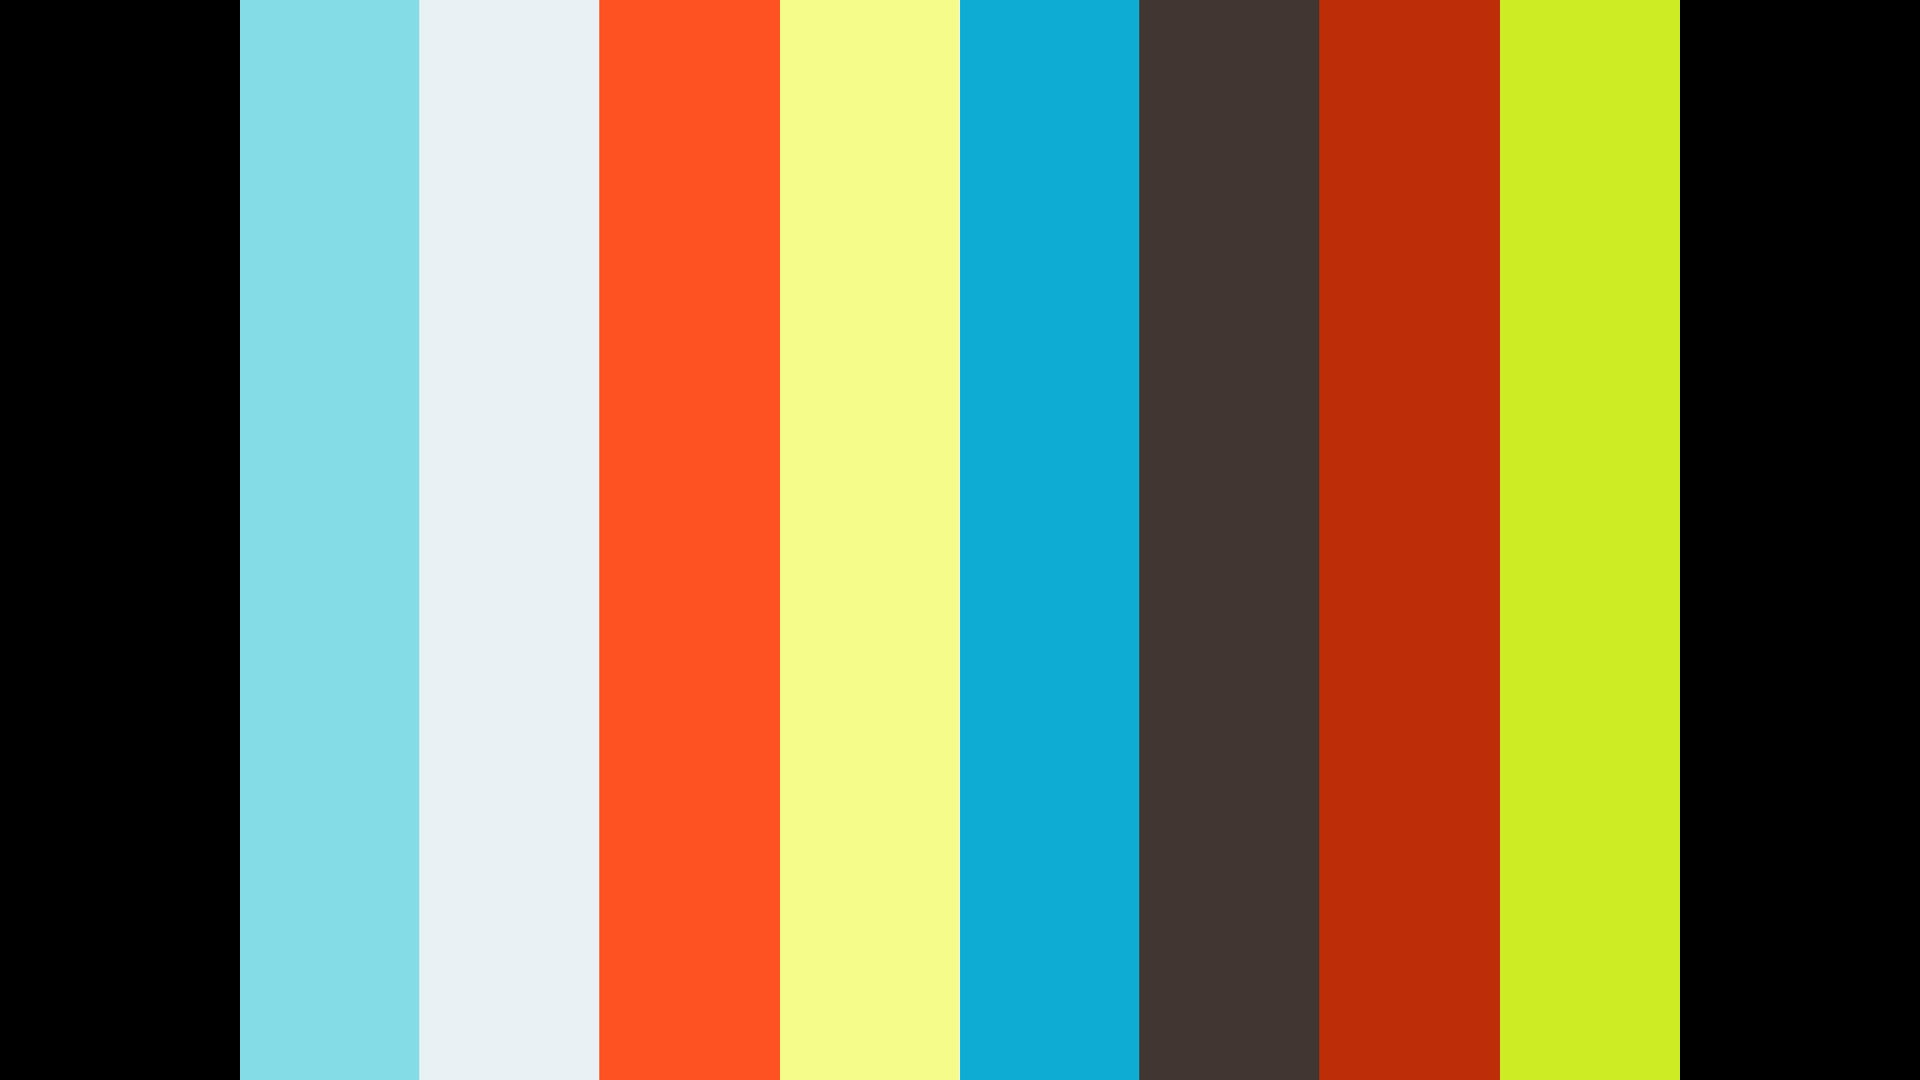 ኢትዮጵያ - ገደለ አርበኛ-ፋኖ  በዘመነ አብይ  Patriots call   March 06, 2020#03